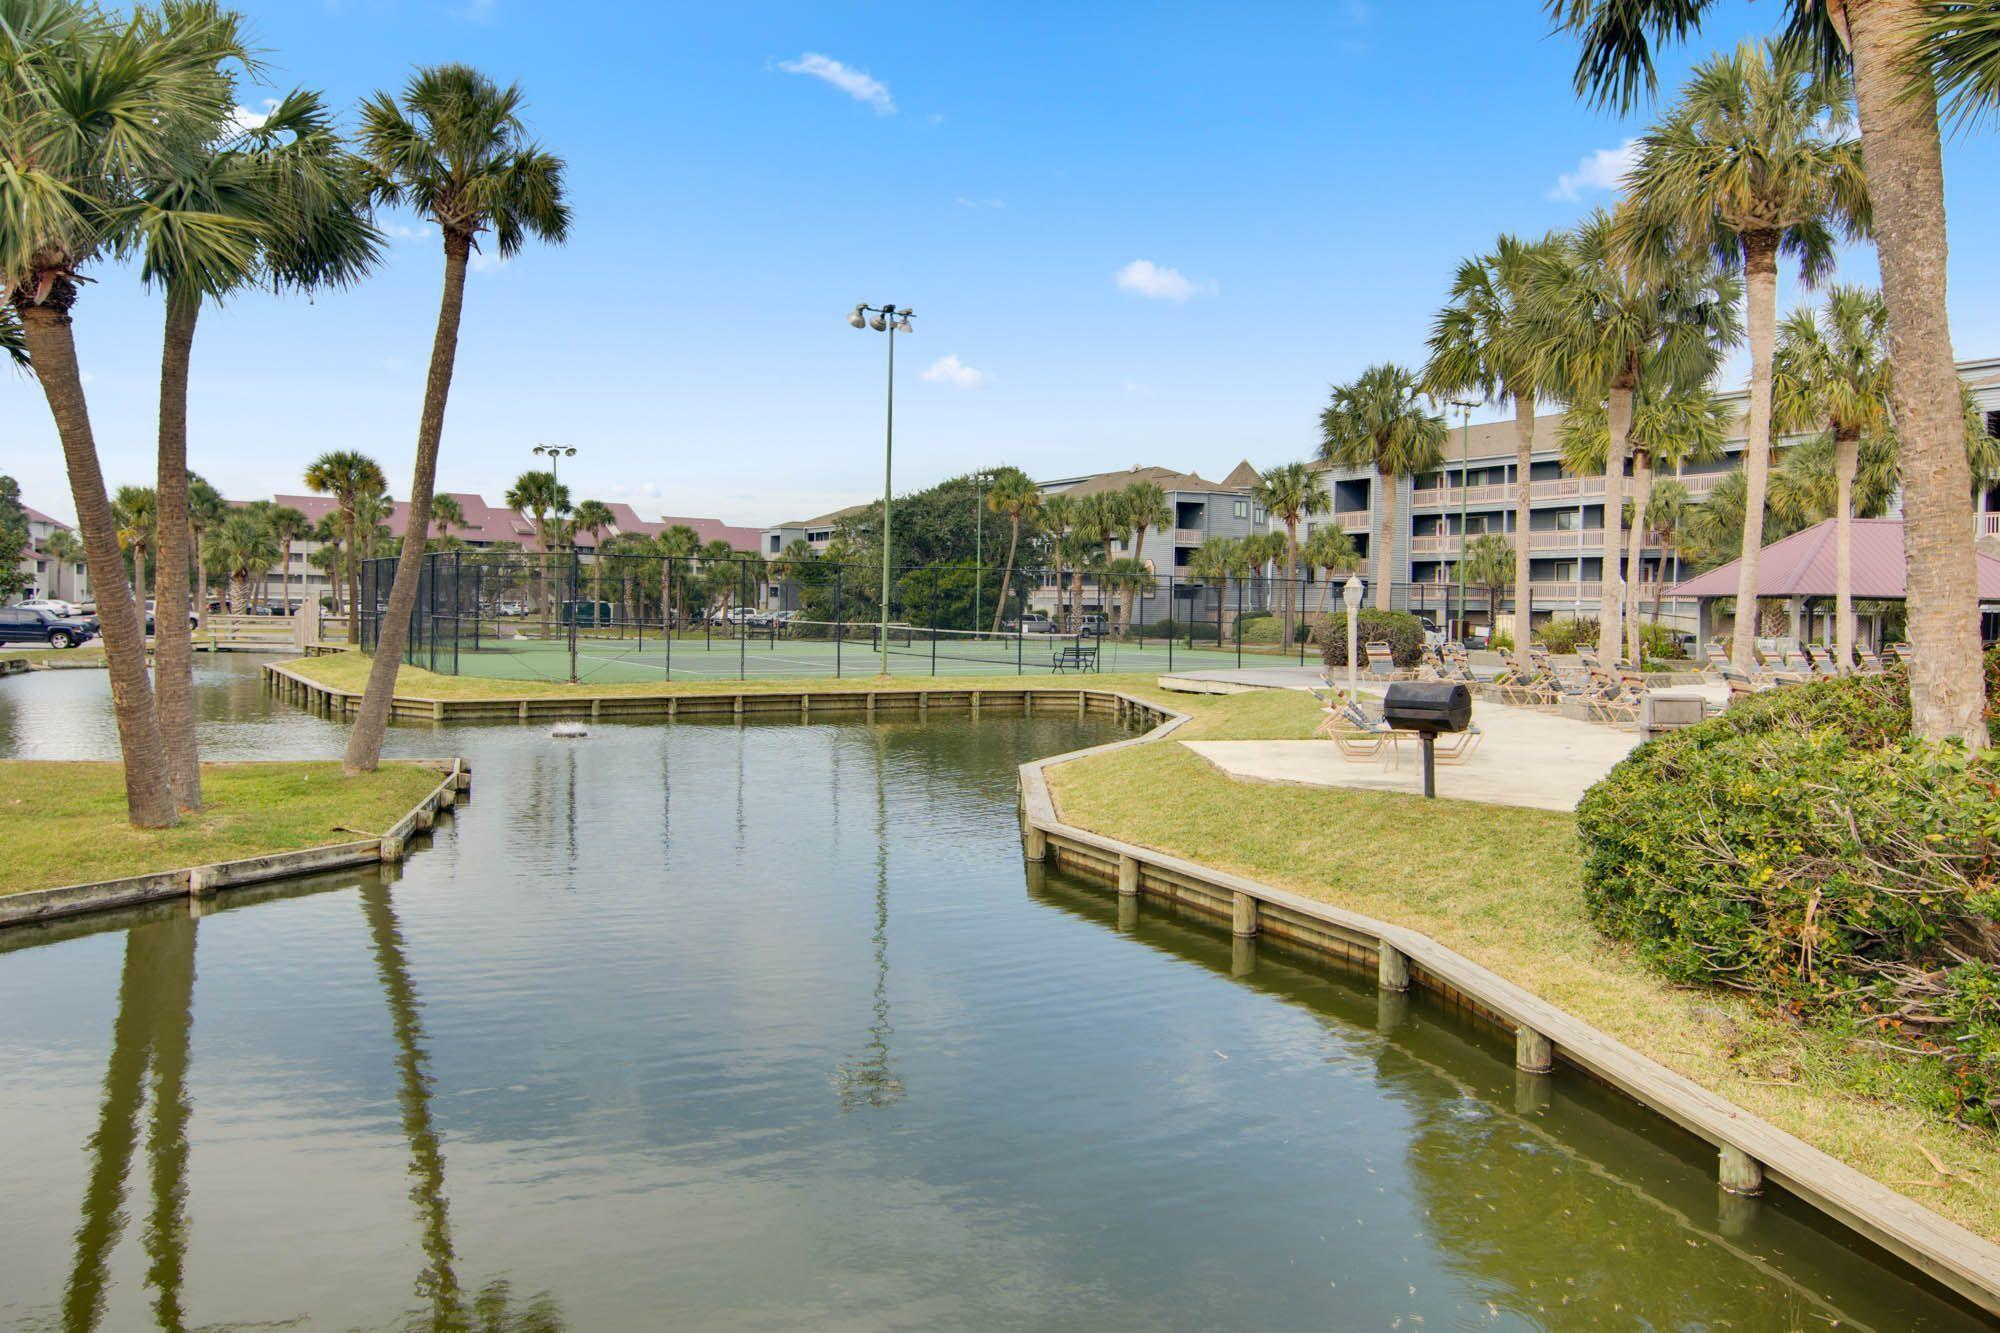 Mariners Cay Homes For Sale - 51 Mariners Cay, Folly Beach, SC - 27